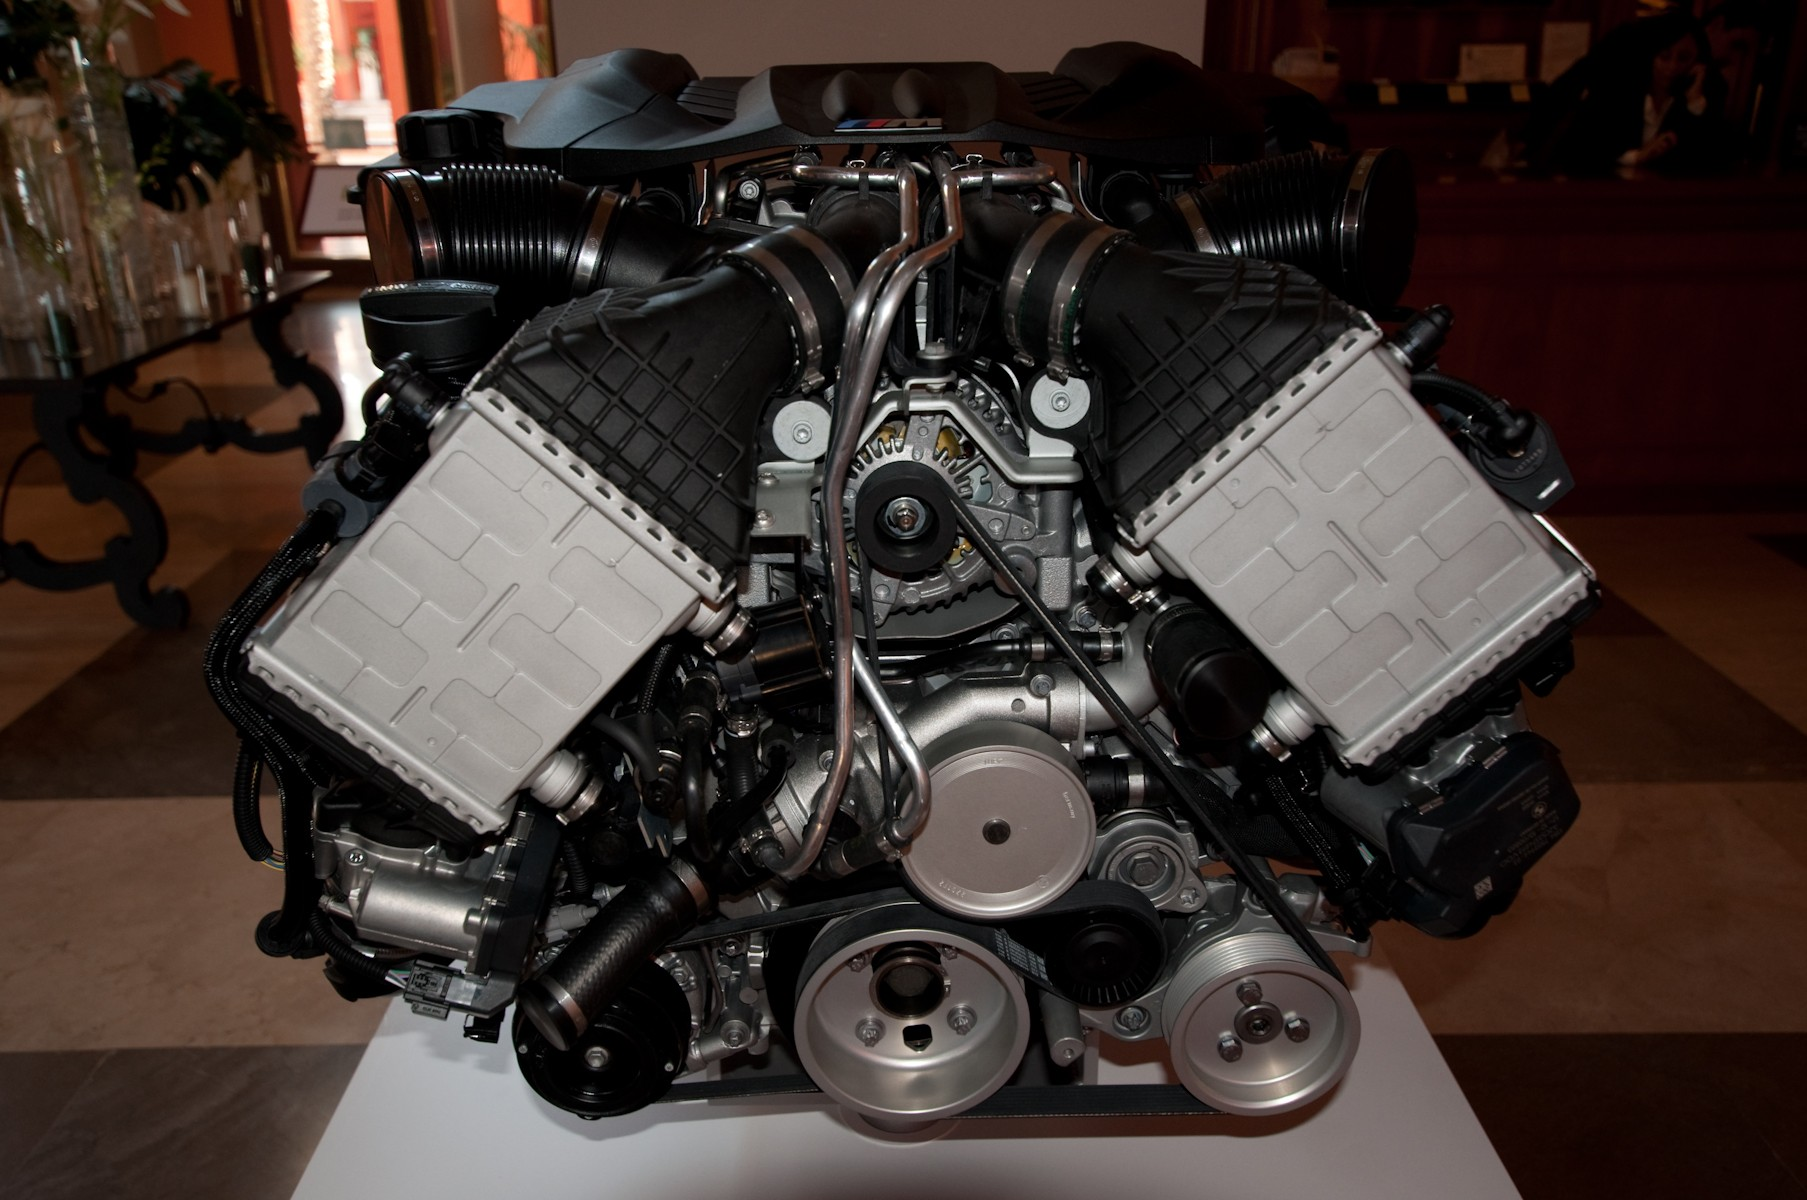 V8 Car Engine Diagram Bmw Vs Mercedes Vs Audi V8 Engines Of V8 Car Engine Diagram Bmw Vs Mercedes Vs Audi V8 Engines